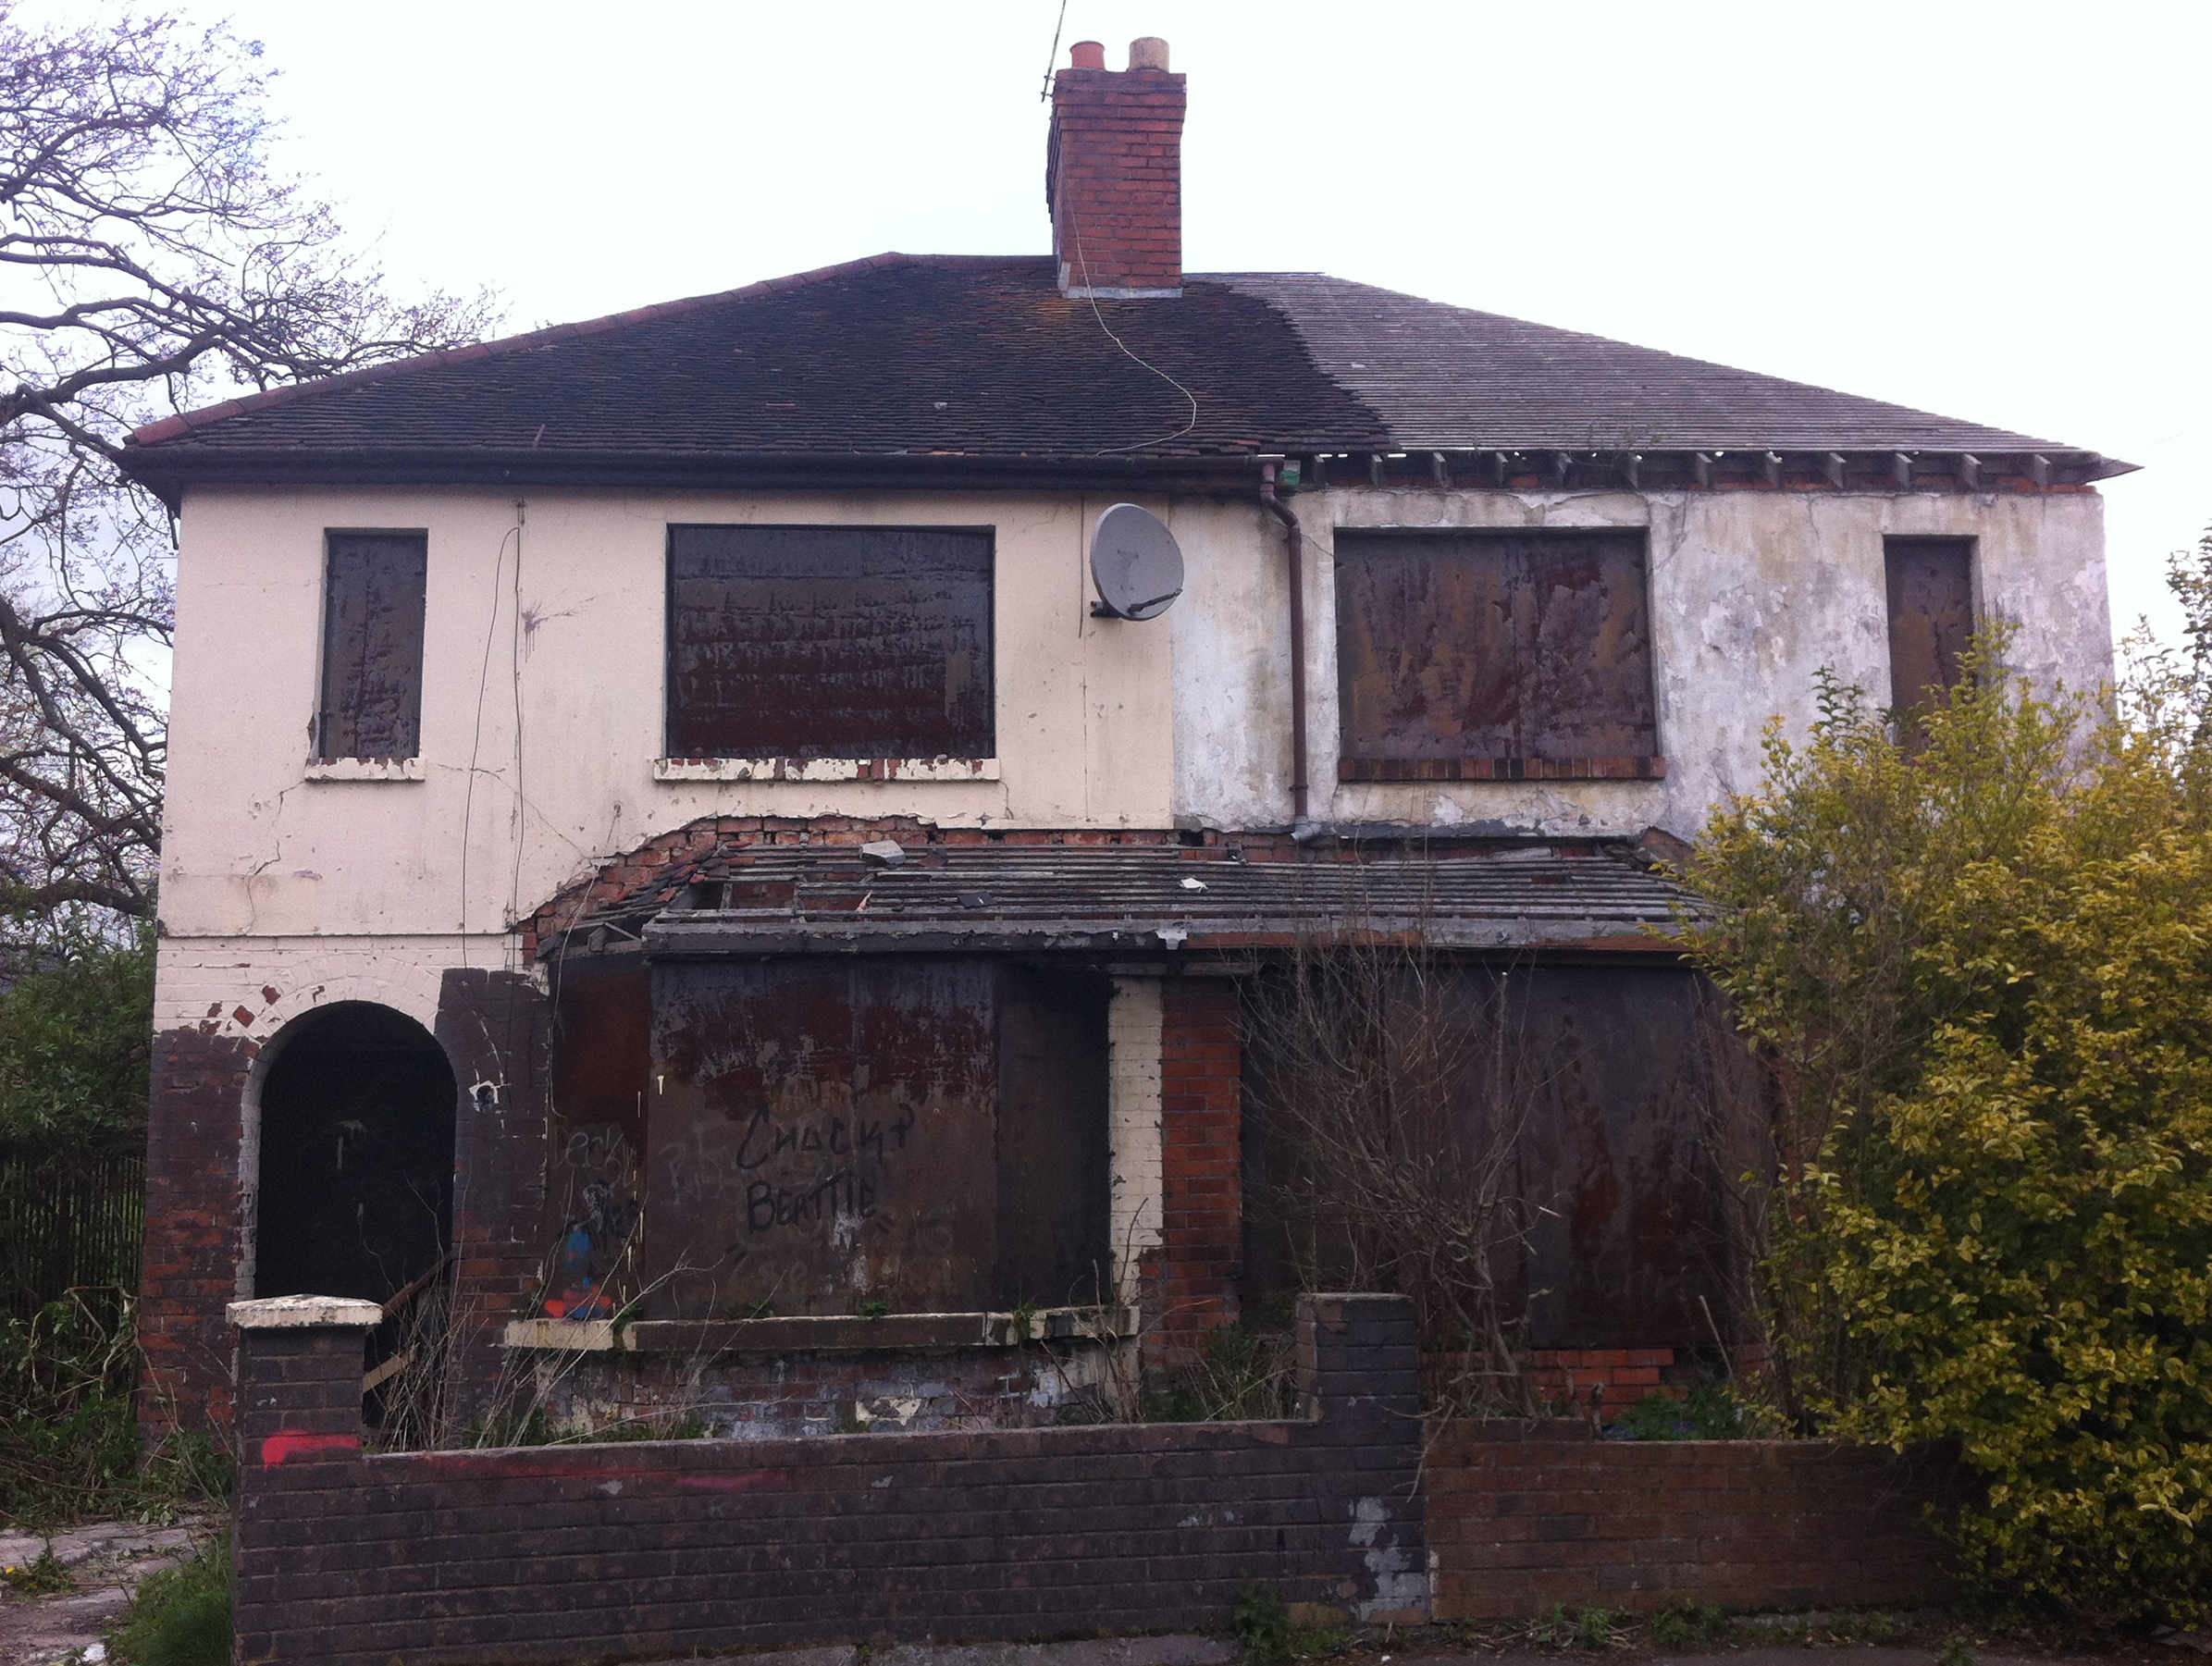 File:Abandoned house, Belfast - panoramio.jpg - Wikimedia Commons